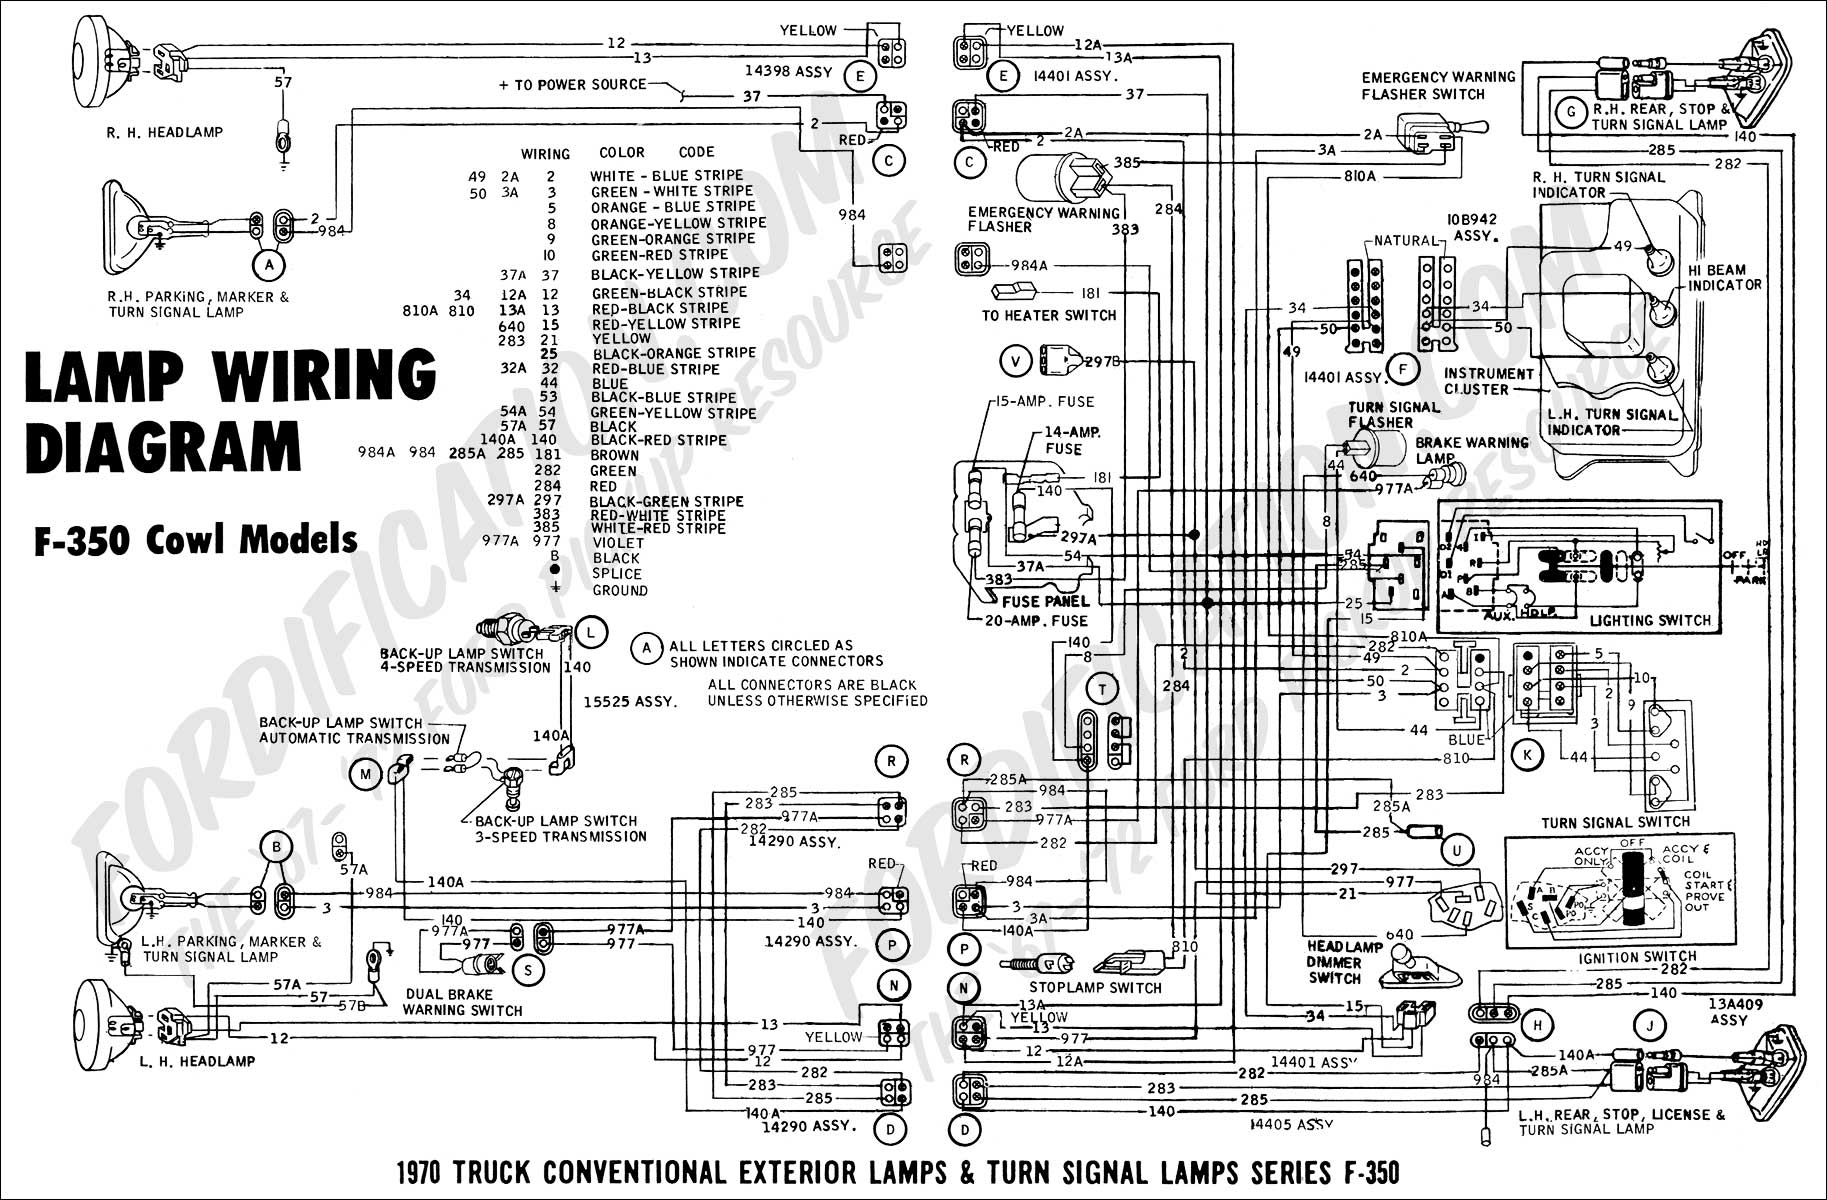 hight resolution of f450 wiring schematic wiring diagram todays 2002 chevy impala wiring schematic 2002 ford f 250 wiring schematic